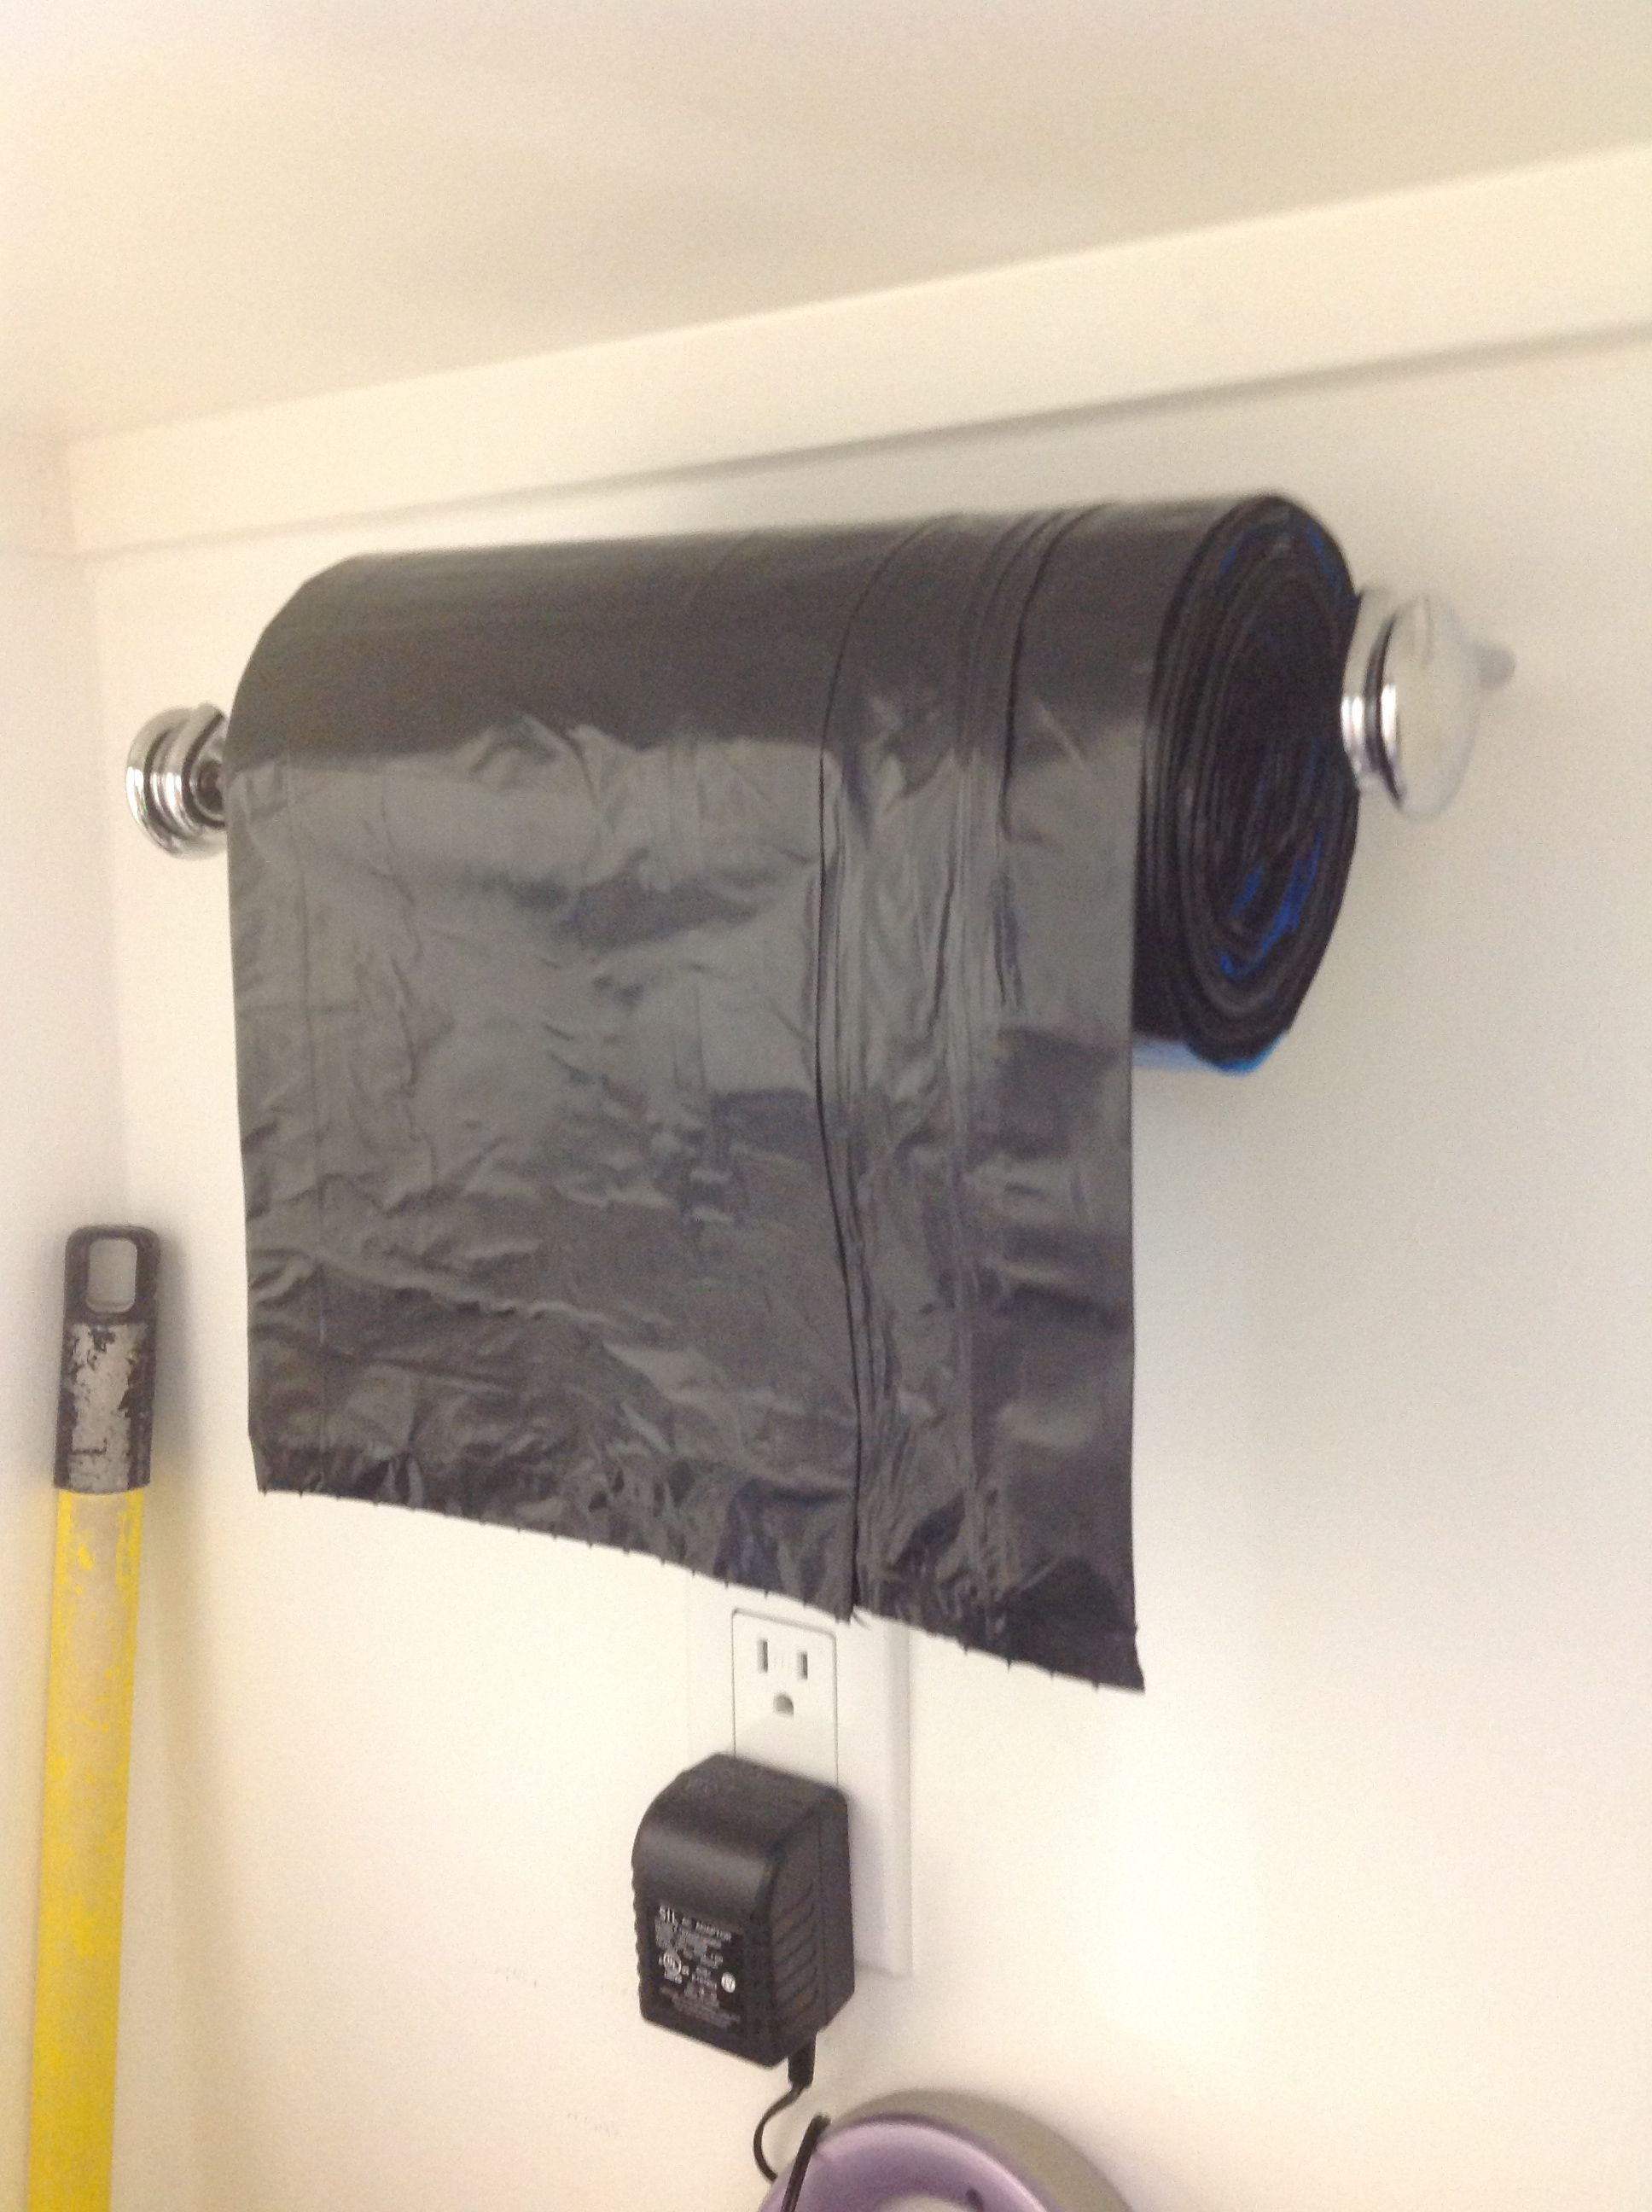 Paper Towel Holder To Hold Garbage Bags I Wonder If Can Roll Plastic Grocery On A And Use This Idea